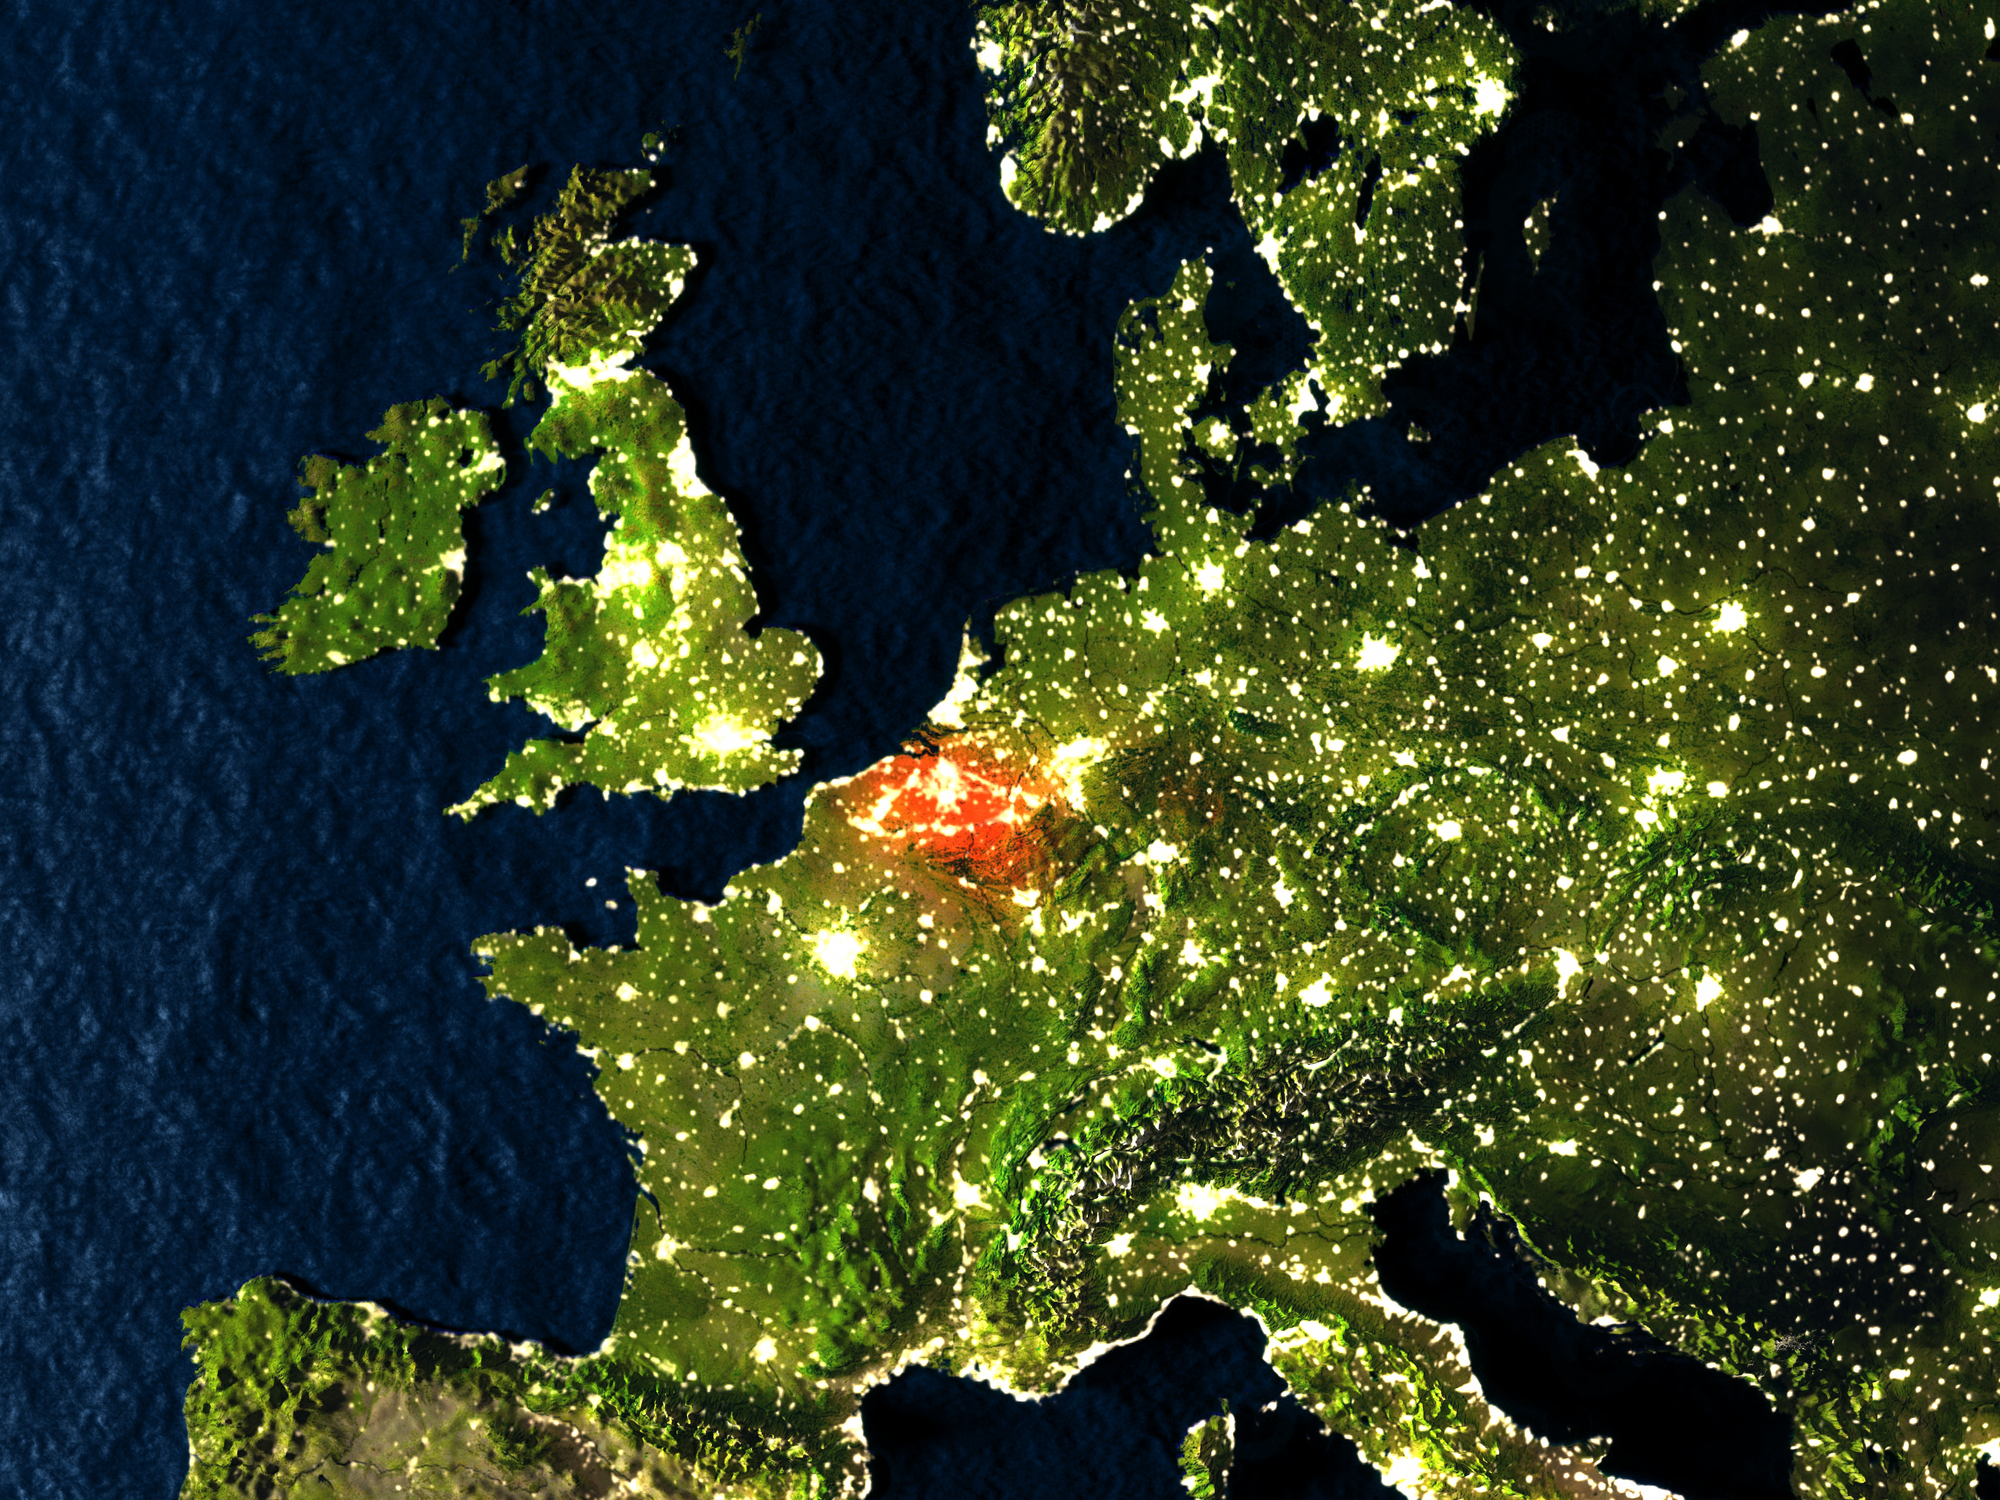 Belgium from space at night. (Thinkstock/PA)